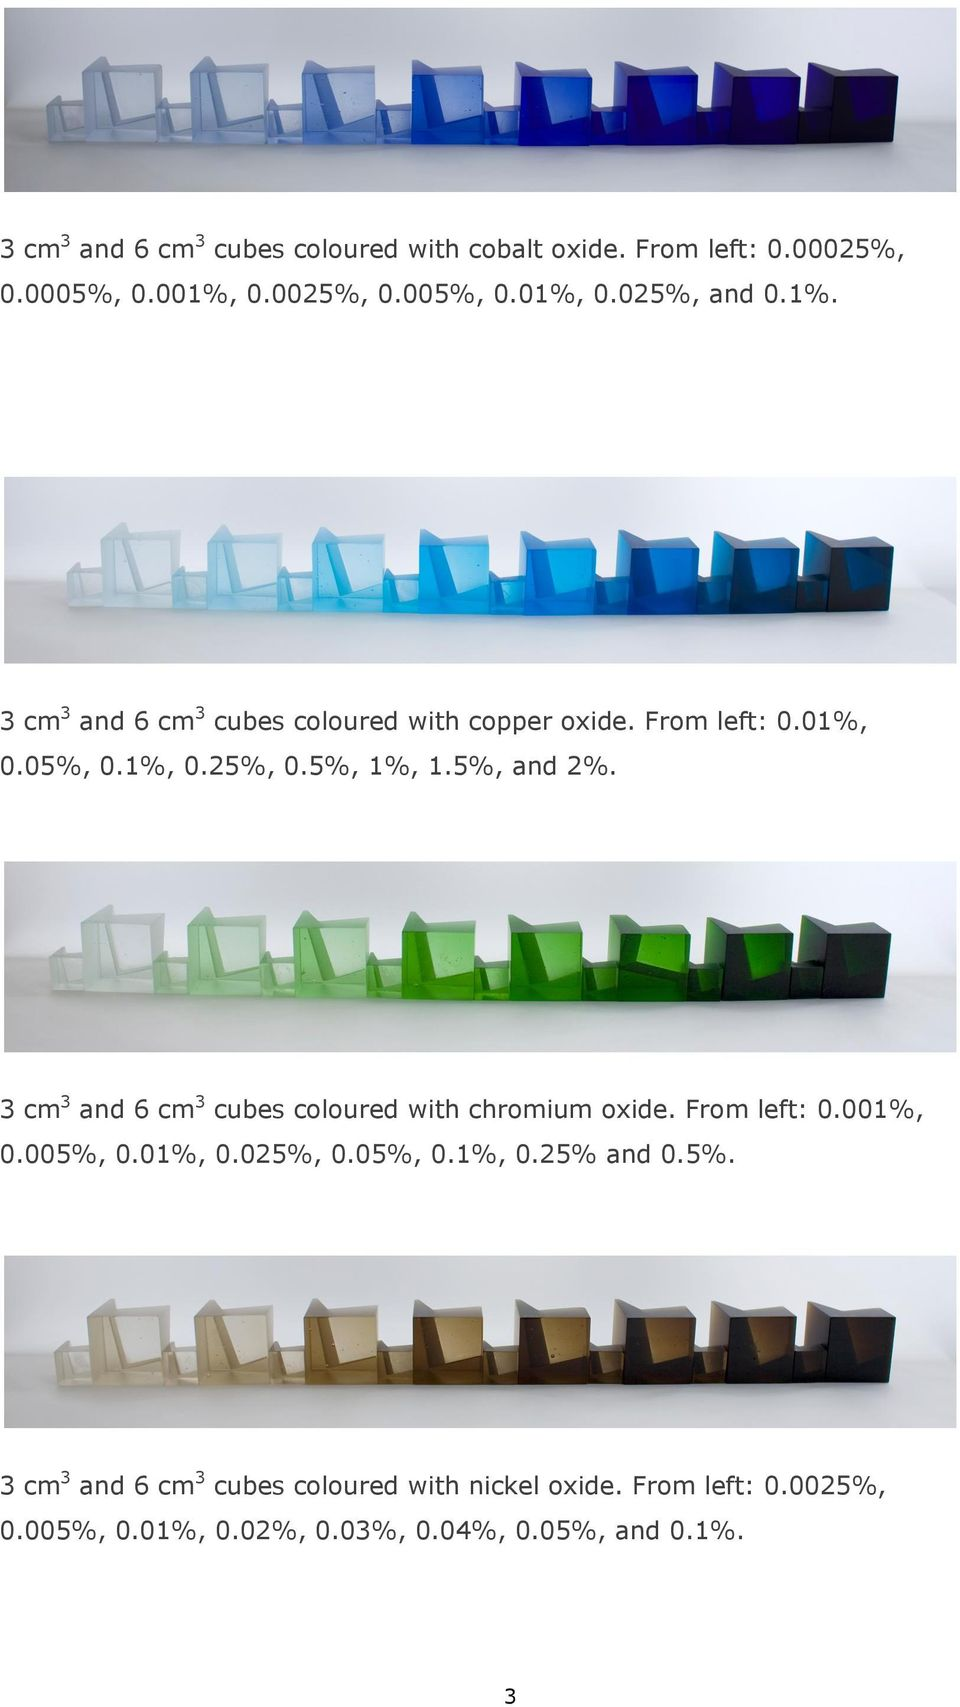 3 cm3 and 6 cm3 cubes coloured with chromium oxide. From left: 0.001%, 0.005%,